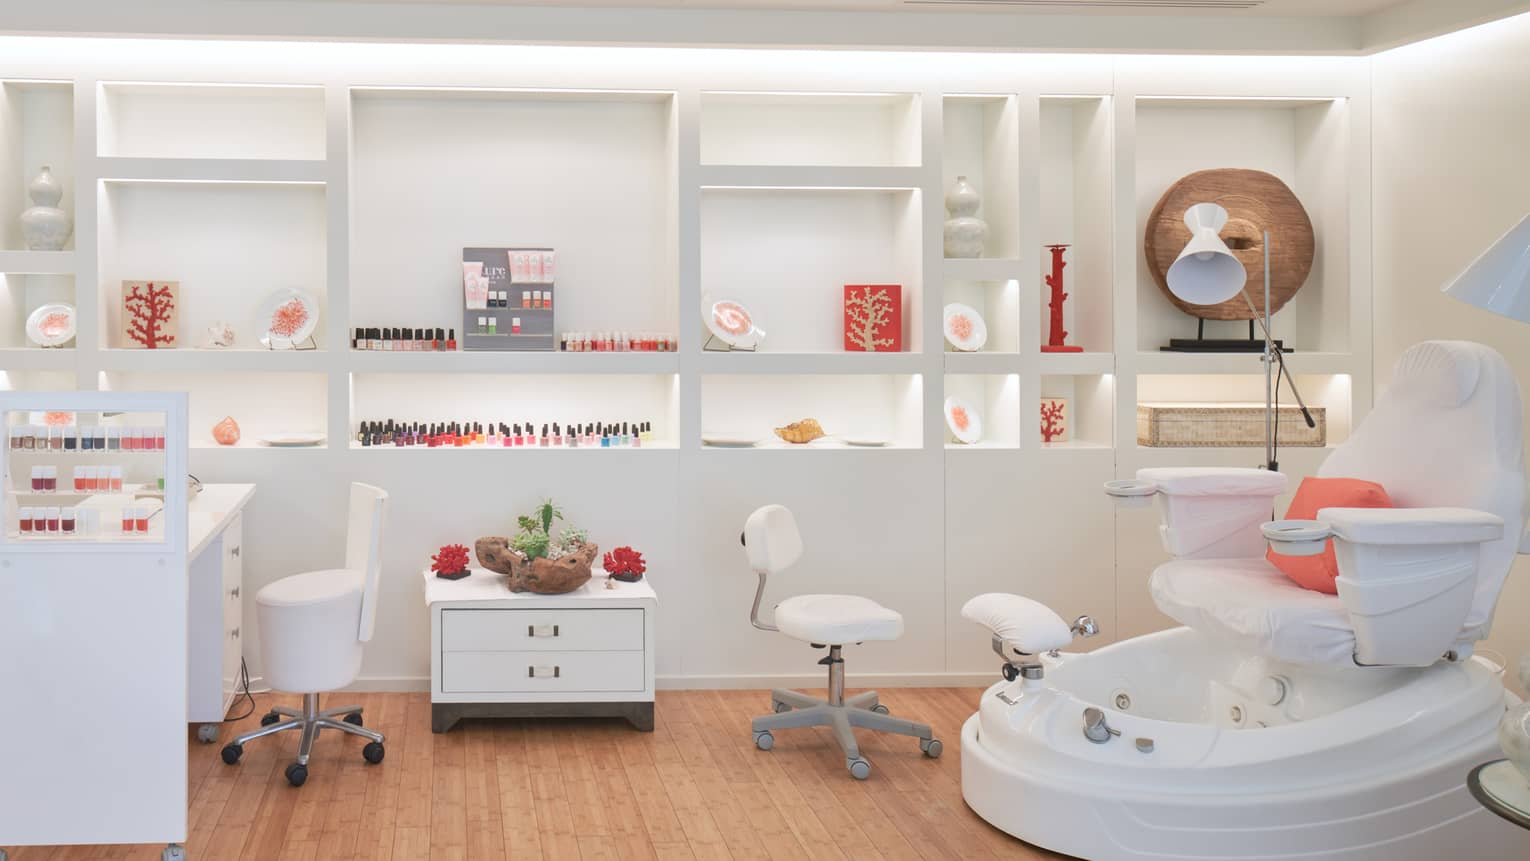 Spa nail bar with manicure station and polish, white wheeled stools, spa pedicure chair, shelving in back